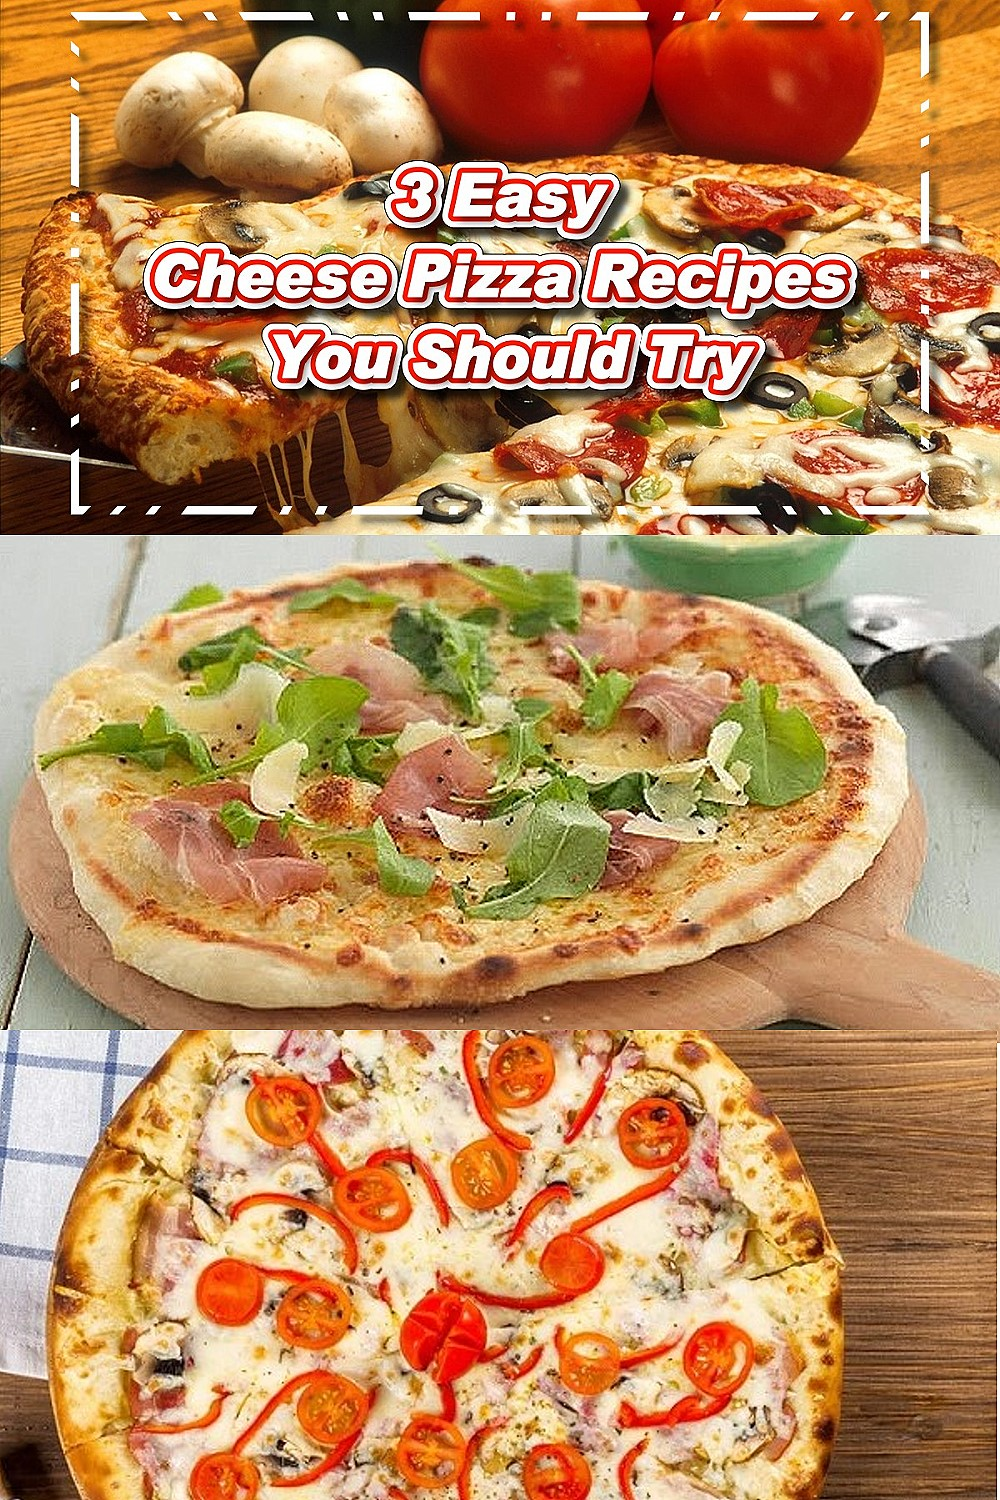 3 Easy Cheese Pizza Recipes You Should Try